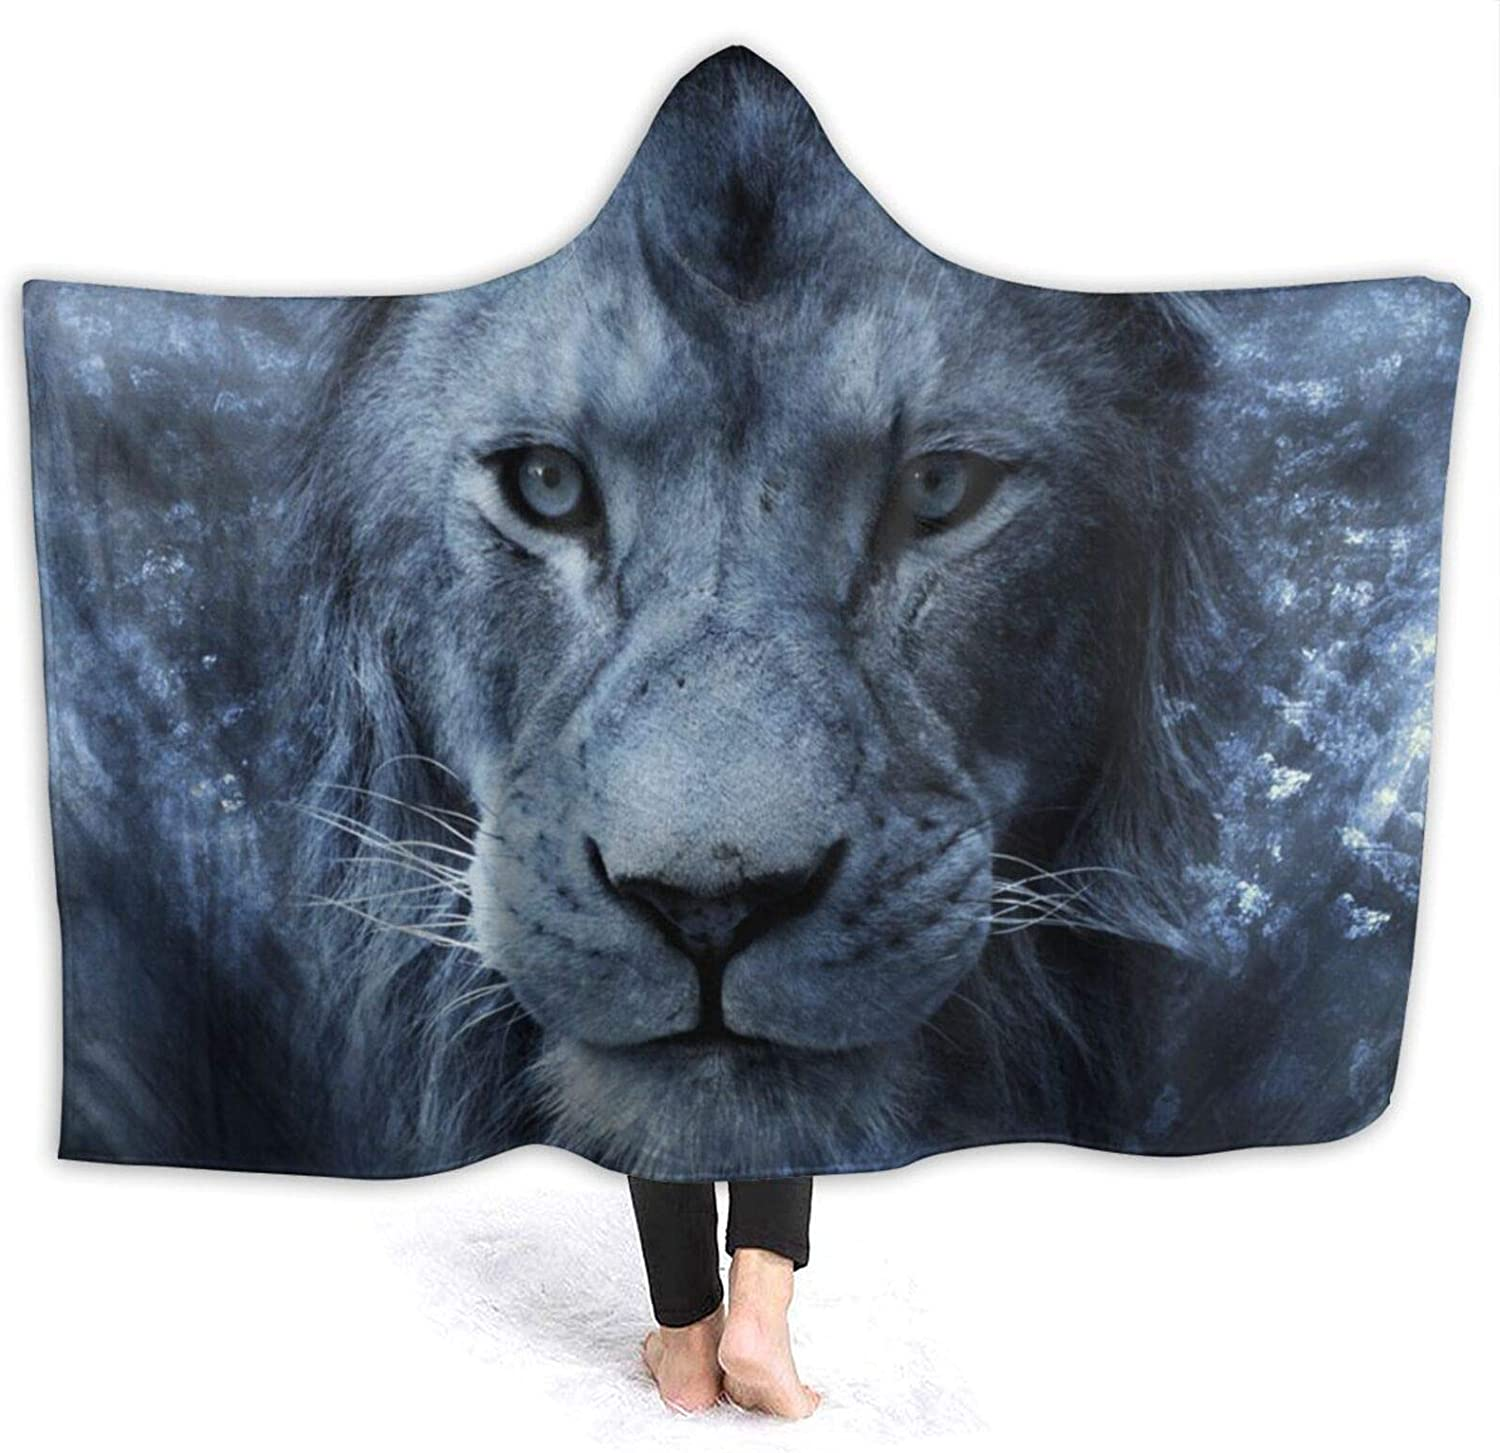 Popular brand in the world Ice Lion Hooded Blanket Air Throw A Conditioning Max 80% OFF